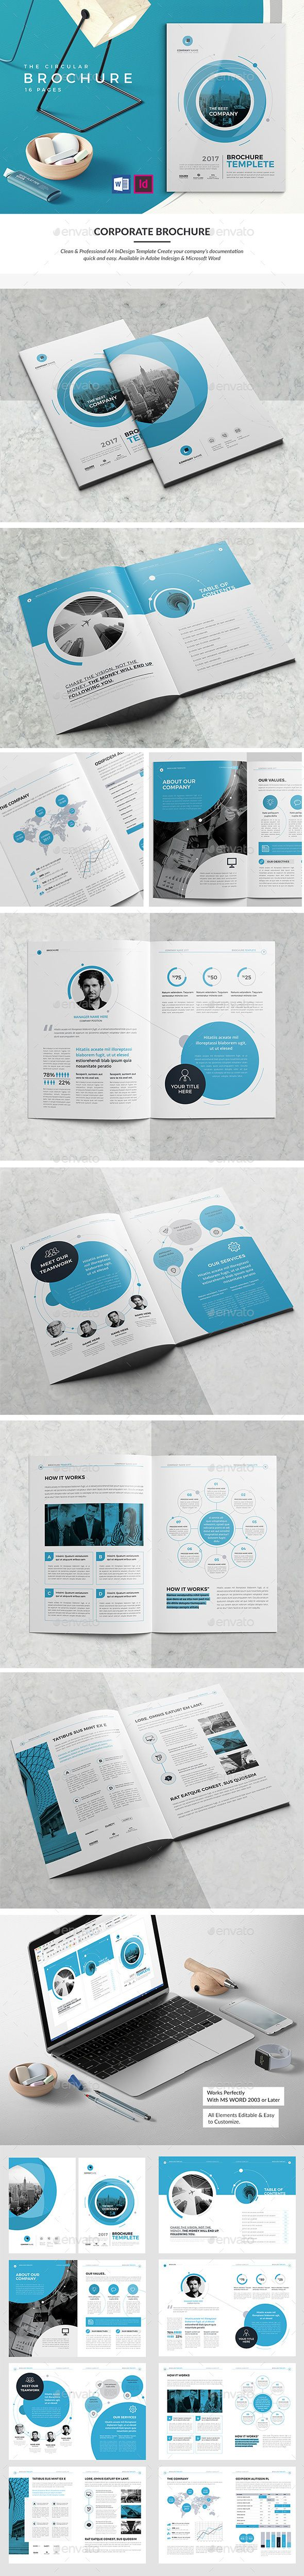 Unusual 1 Page Resumes Thin 1 Week Calendar Template Clean 1099 Agreement Template 11 Vuze Search Templates Old 15 Year Old Resume Example Bright2 Week Notice Templates 25  Best Ideas About Brochure Layout On Pinterest | Portfolio ..